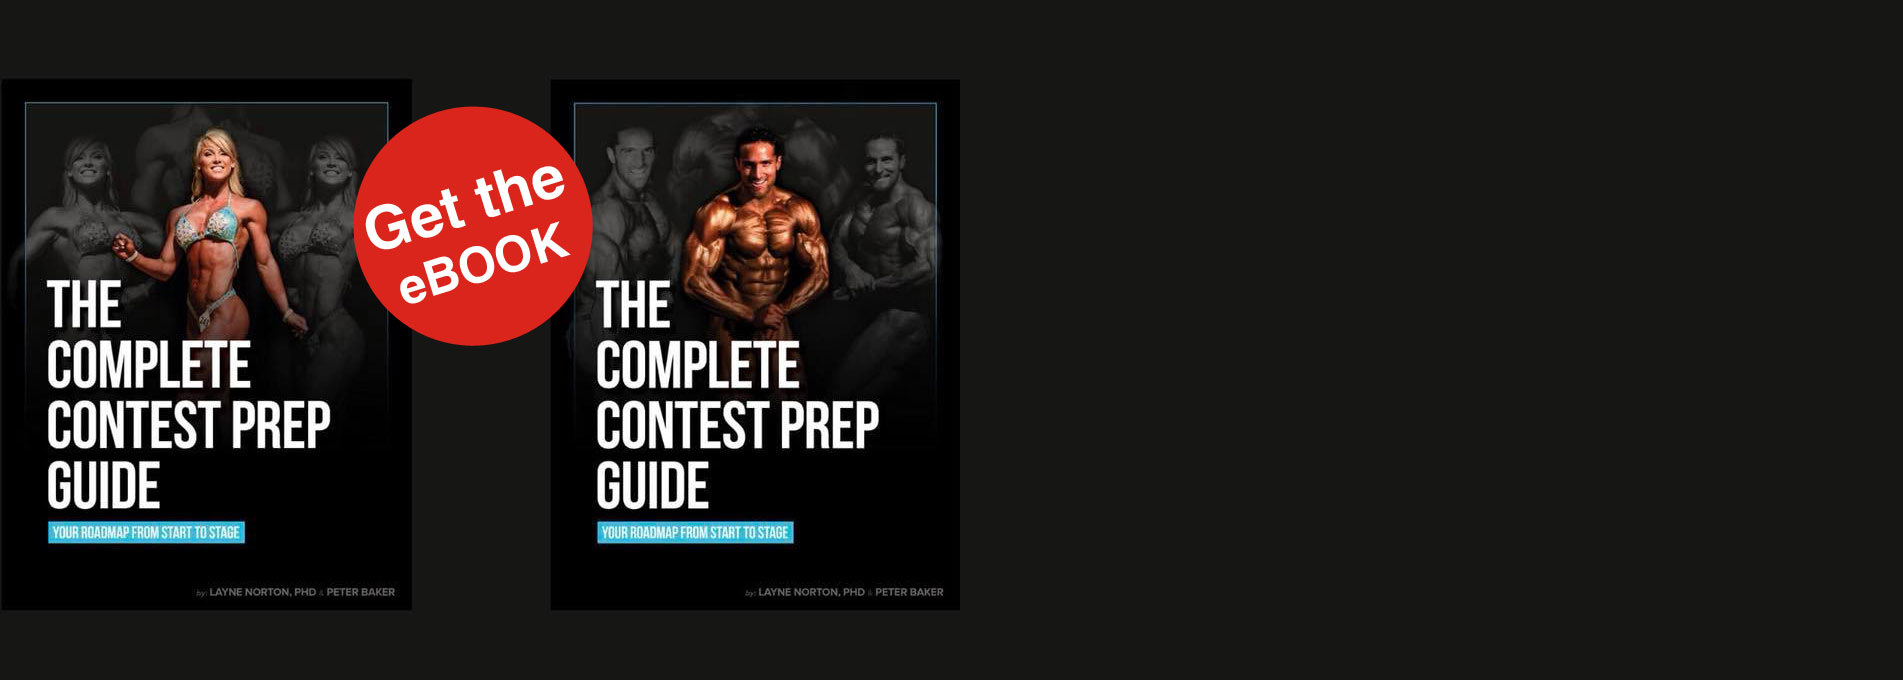 The Complete Contest Prep Guide